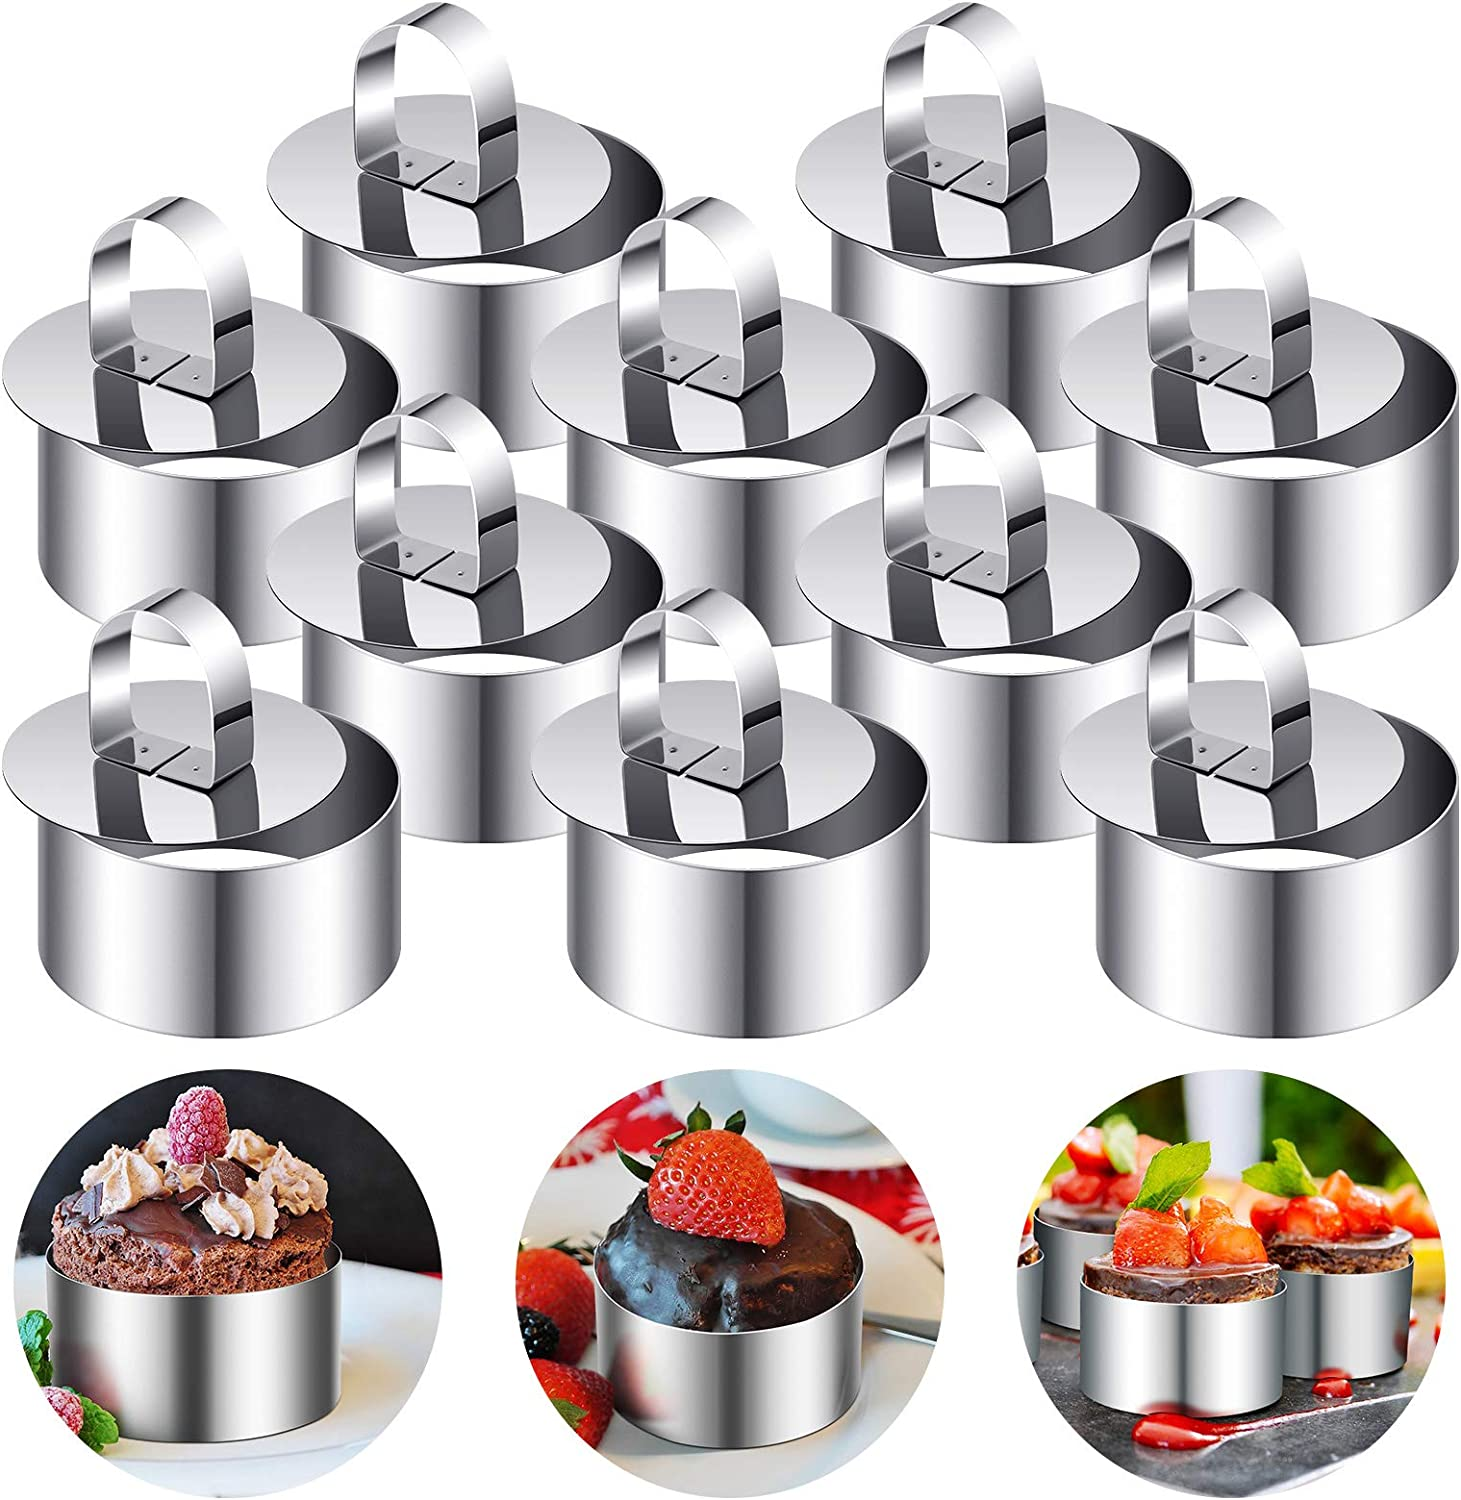 20 Pieces Round Stainless Steel Cake Ring Cake Mousse Mold with Pusher Food Forming Rings Cake Baking Rings for Home Kitchen Baking Tool